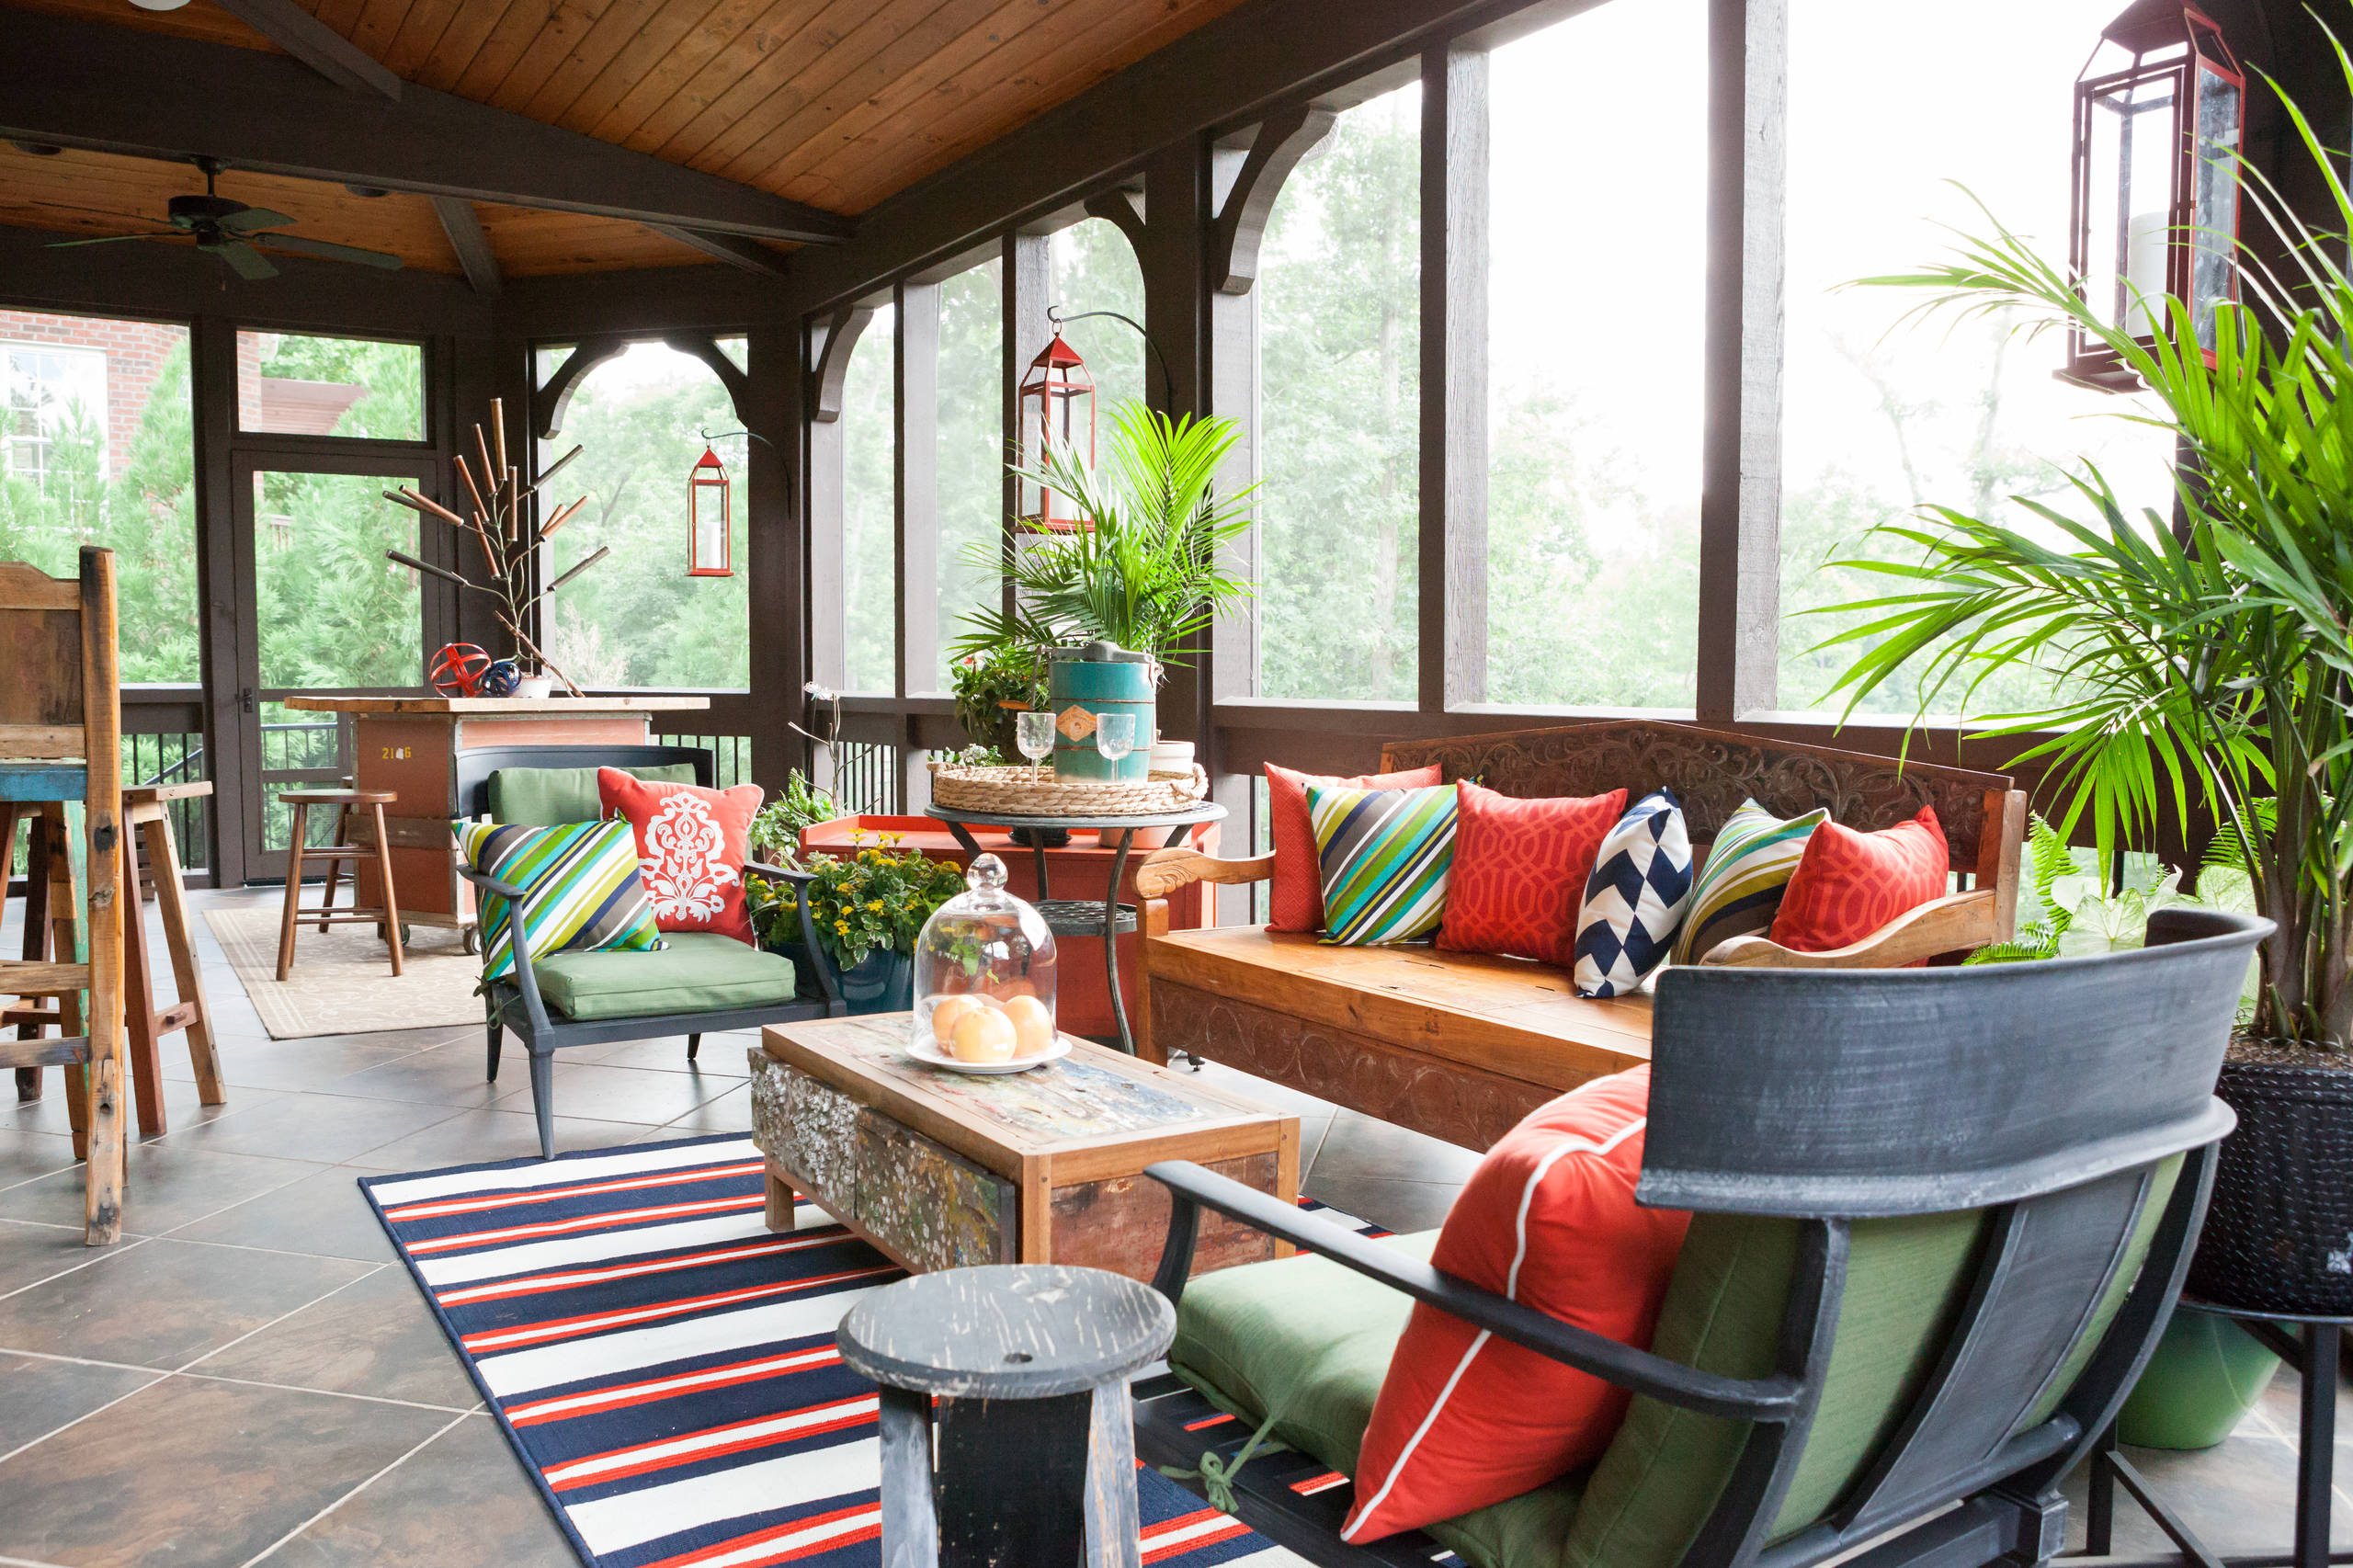 s14 Great ideas for screened porches that can inspire you